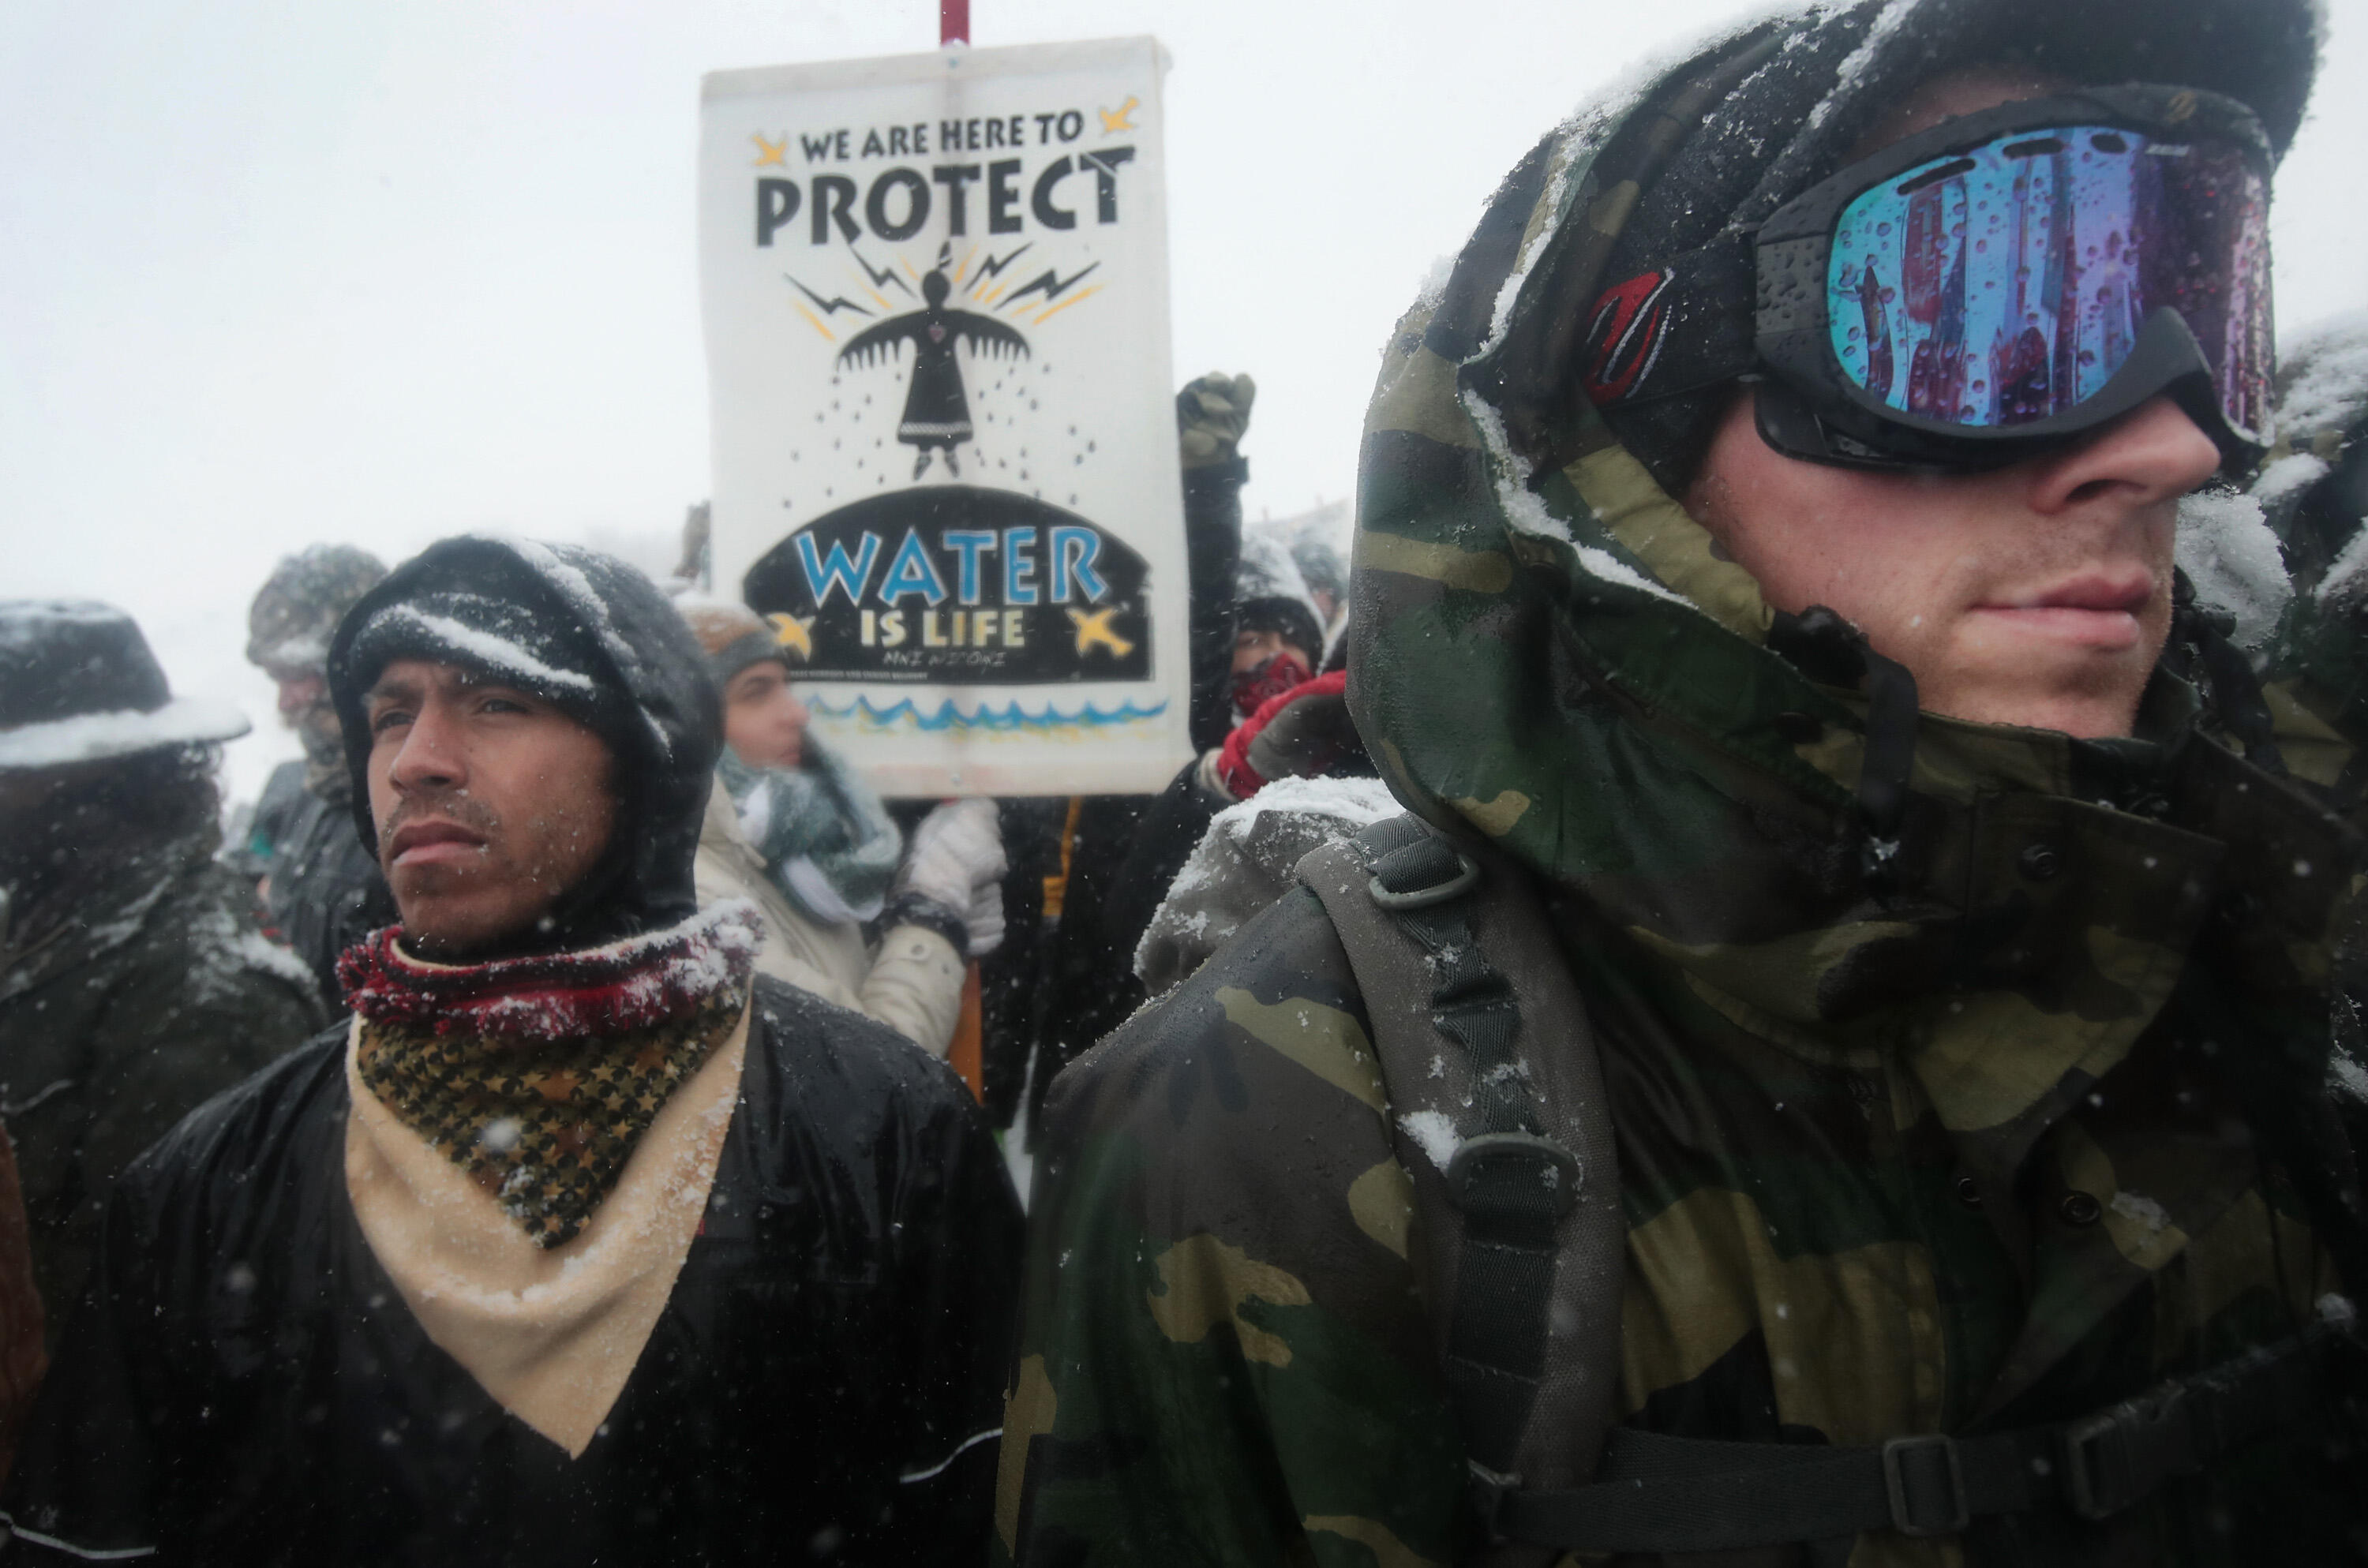 CANNON BALL, ND - DECEMBER 05:  Despite blizzard conditions, military veterans march in support of the